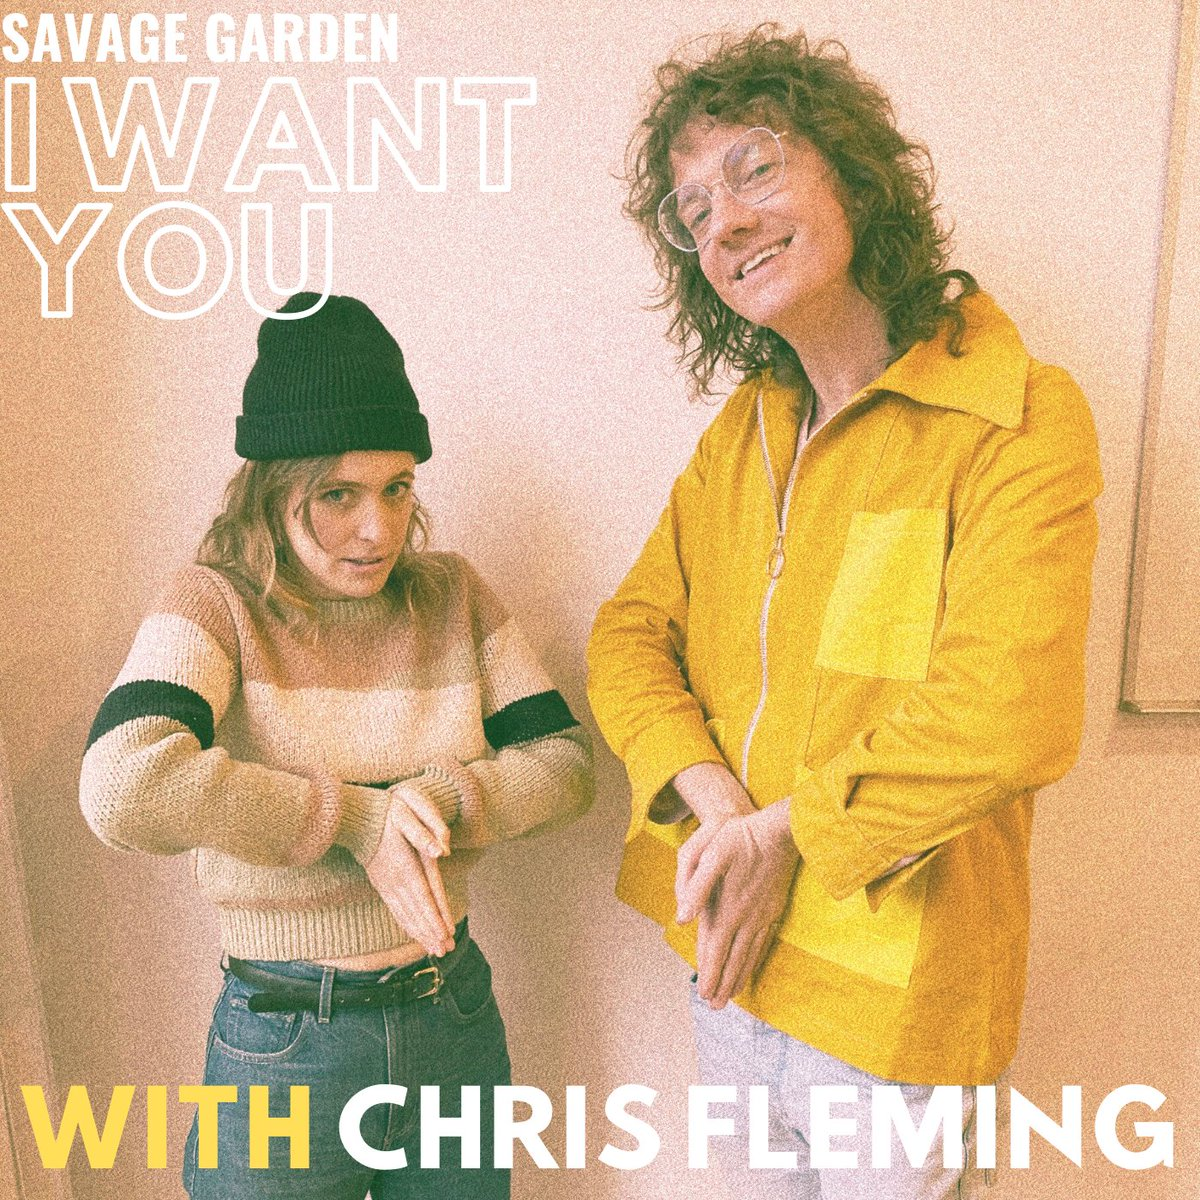 gentle giant @chrisfluming returns for some chicka cherry chaos and SAVAGE GARDEN -> open.spotify.com/episode/7ne4Za…